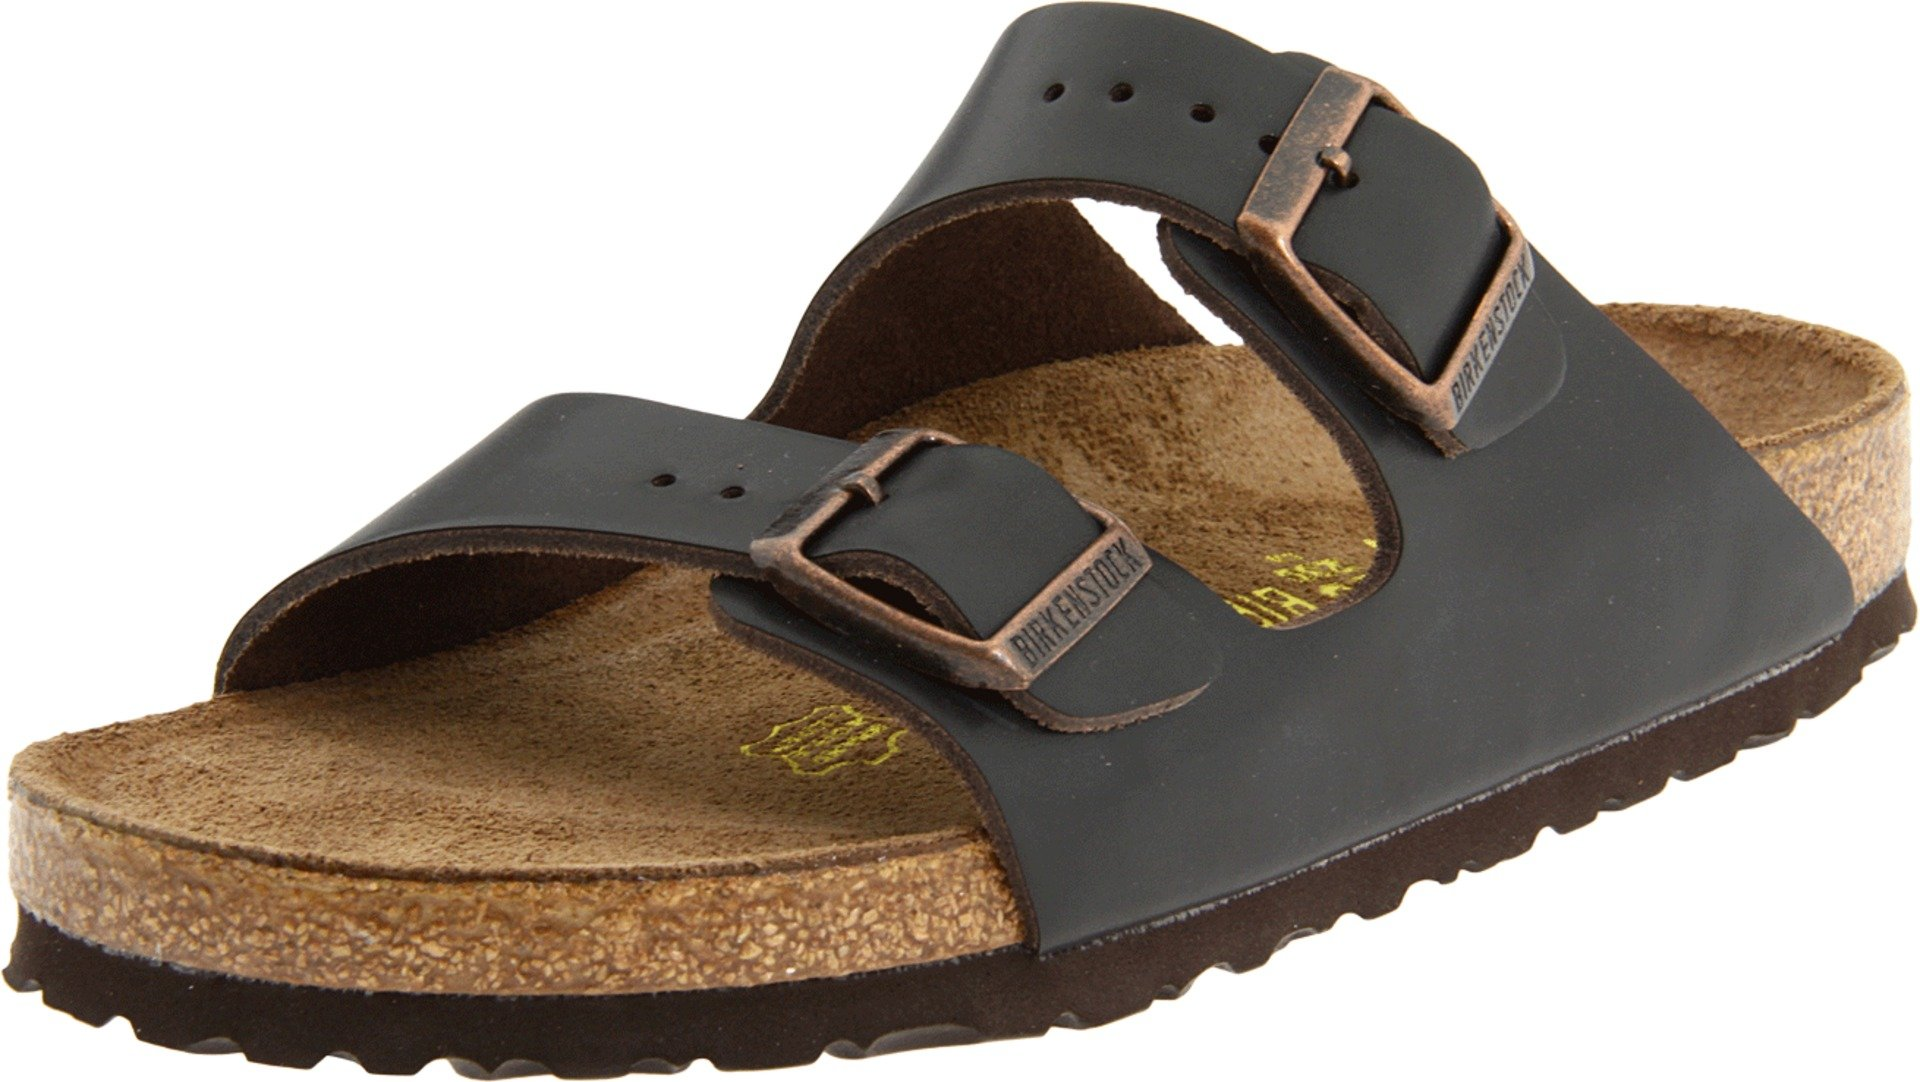 Birkenstock Men's Arizona Slide Sandals,Brown,44 EU (11-11.5 Men / 13-13.5 Women) M